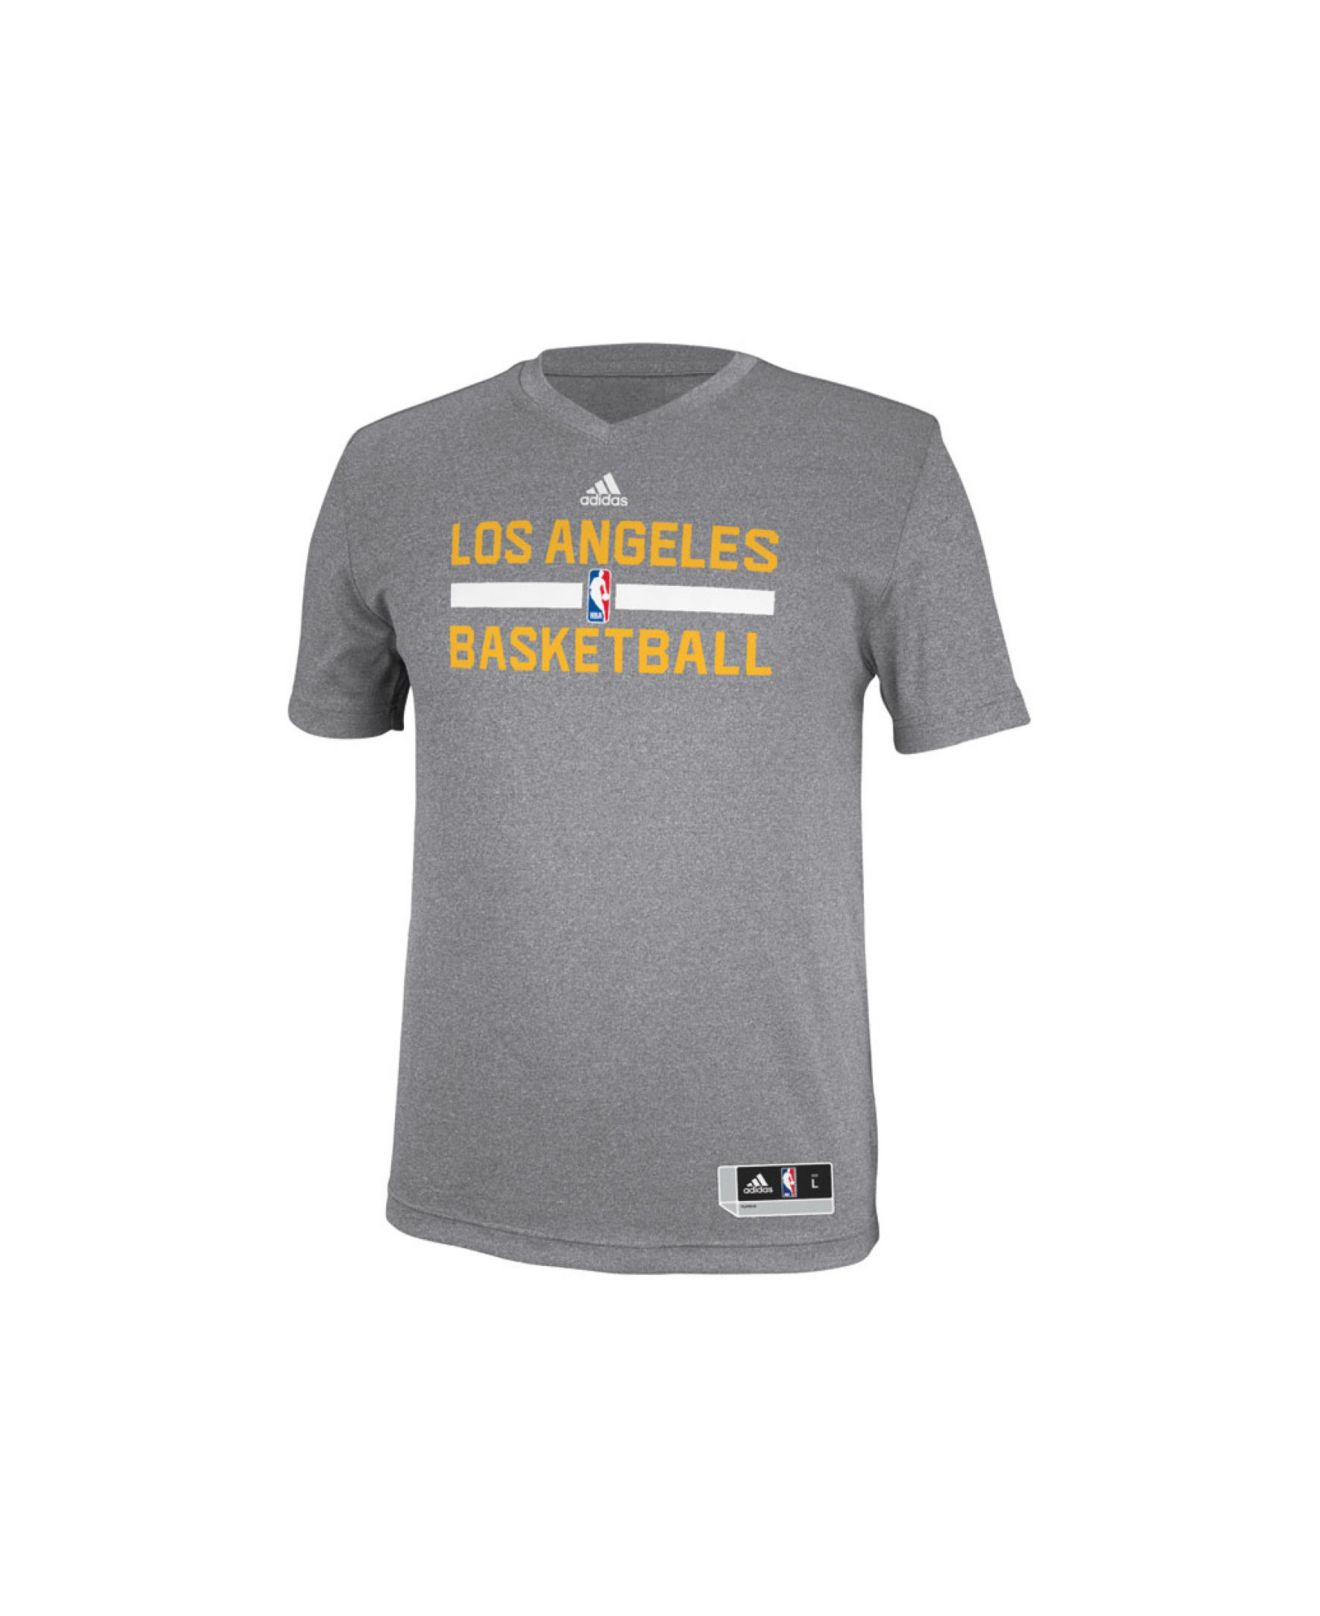 Lyst - adidas Men S Los Angeles Lakers Practice Graphic T-Shirt in ... c61d13bca